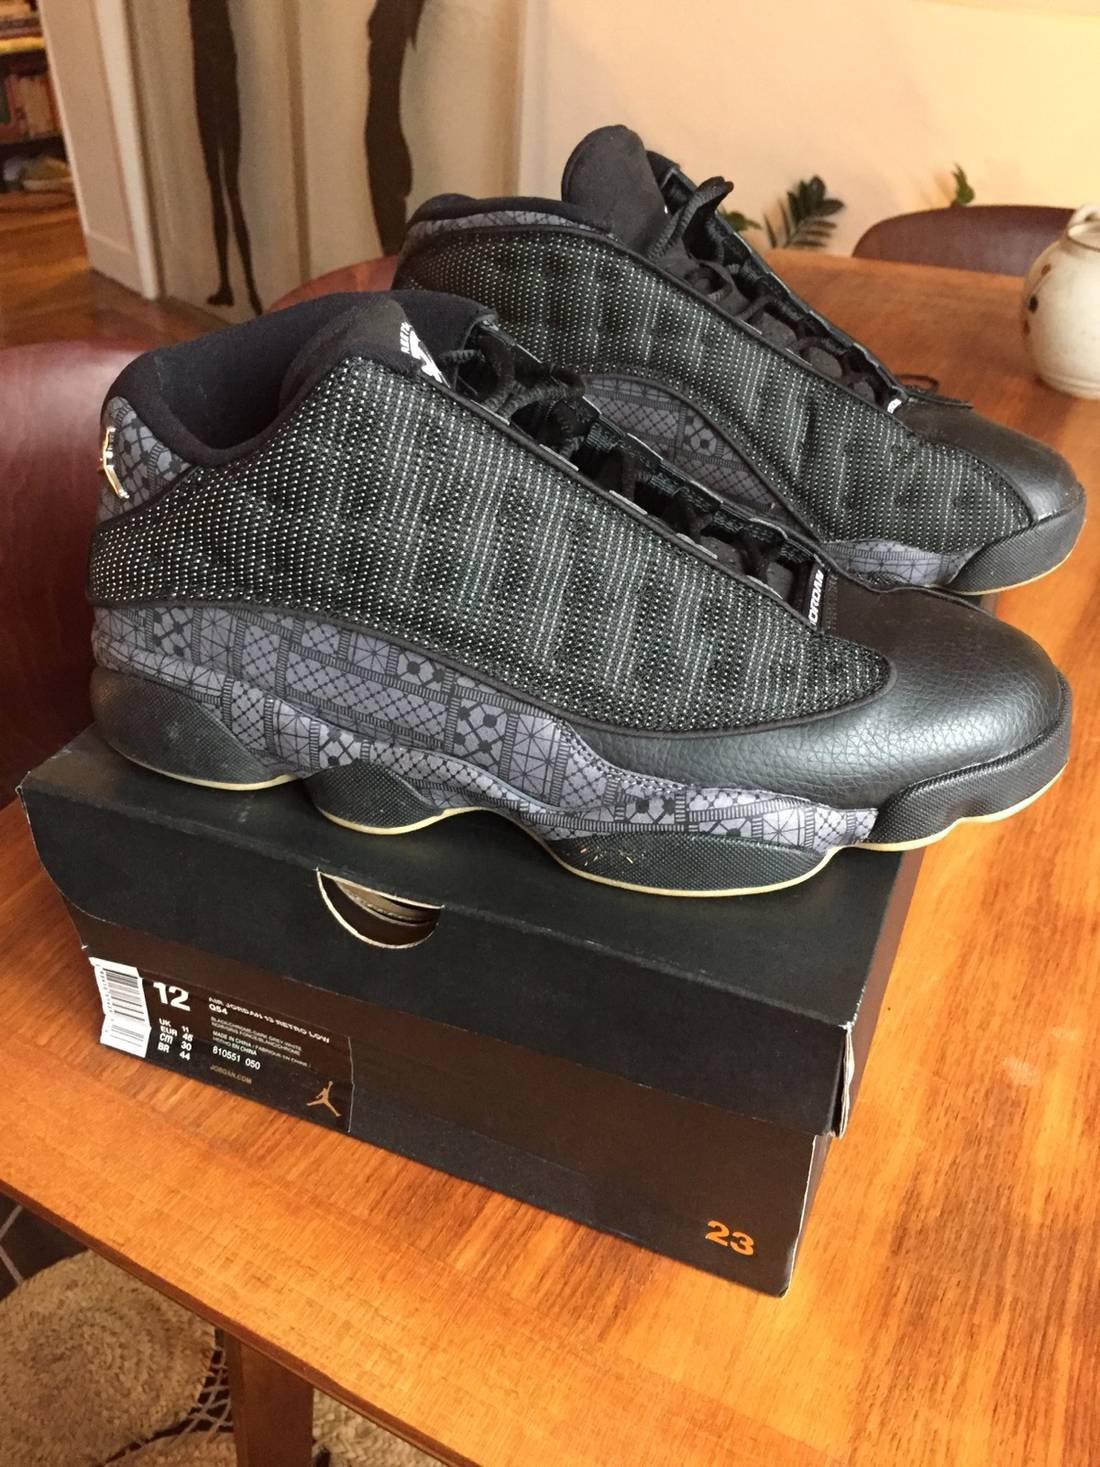 cheap for discount b4eee a6374 closeout jordan brand air jordan xiii 13 quai 54 special anniversary  edition size us 12 b06b9